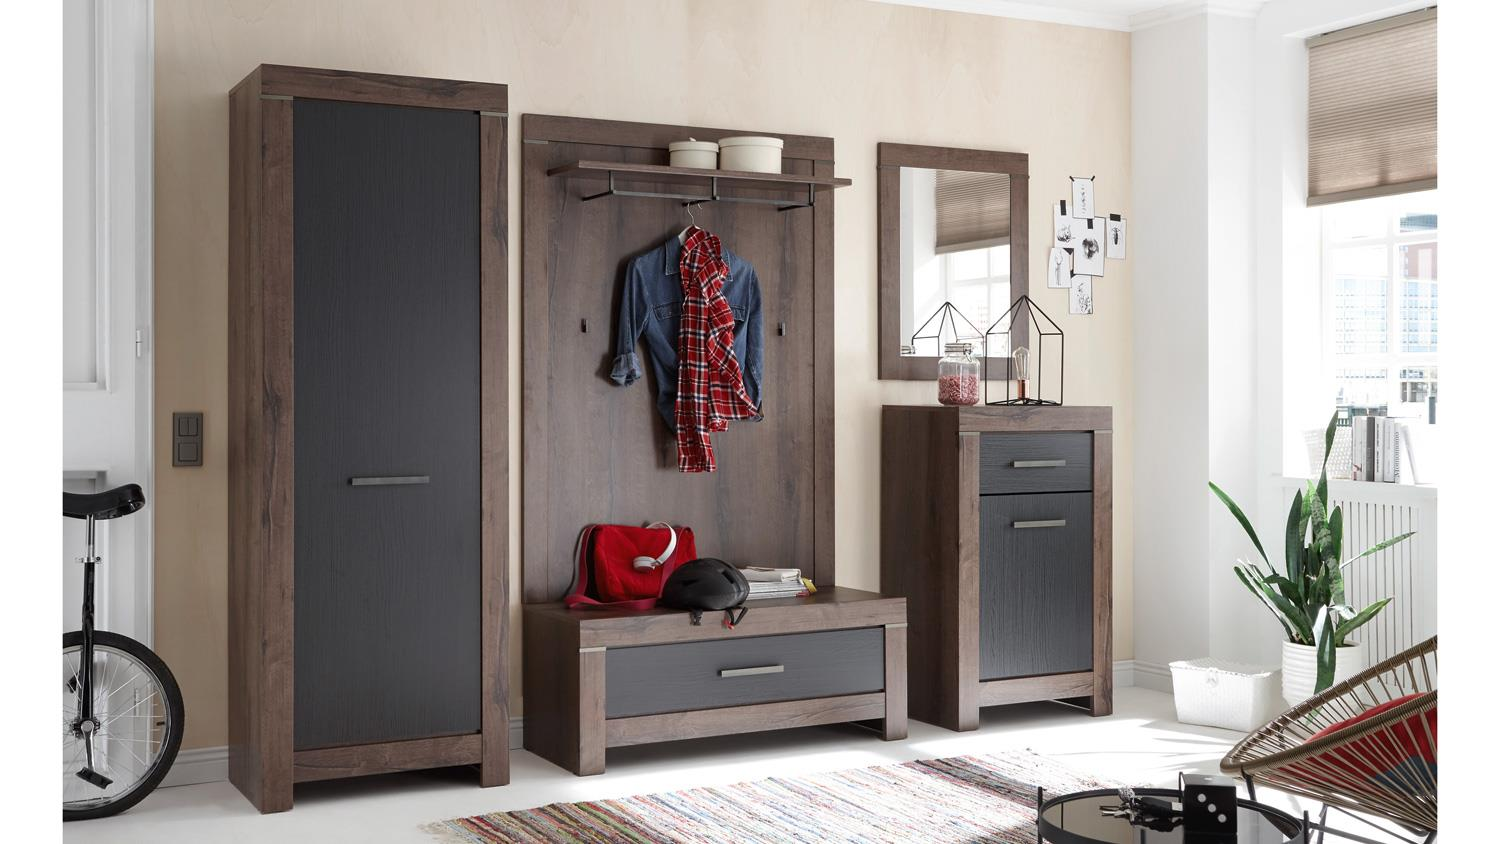 bank balin garderobe sitzbank canyon eiche schwarz mit 1 schubkasten. Black Bedroom Furniture Sets. Home Design Ideas